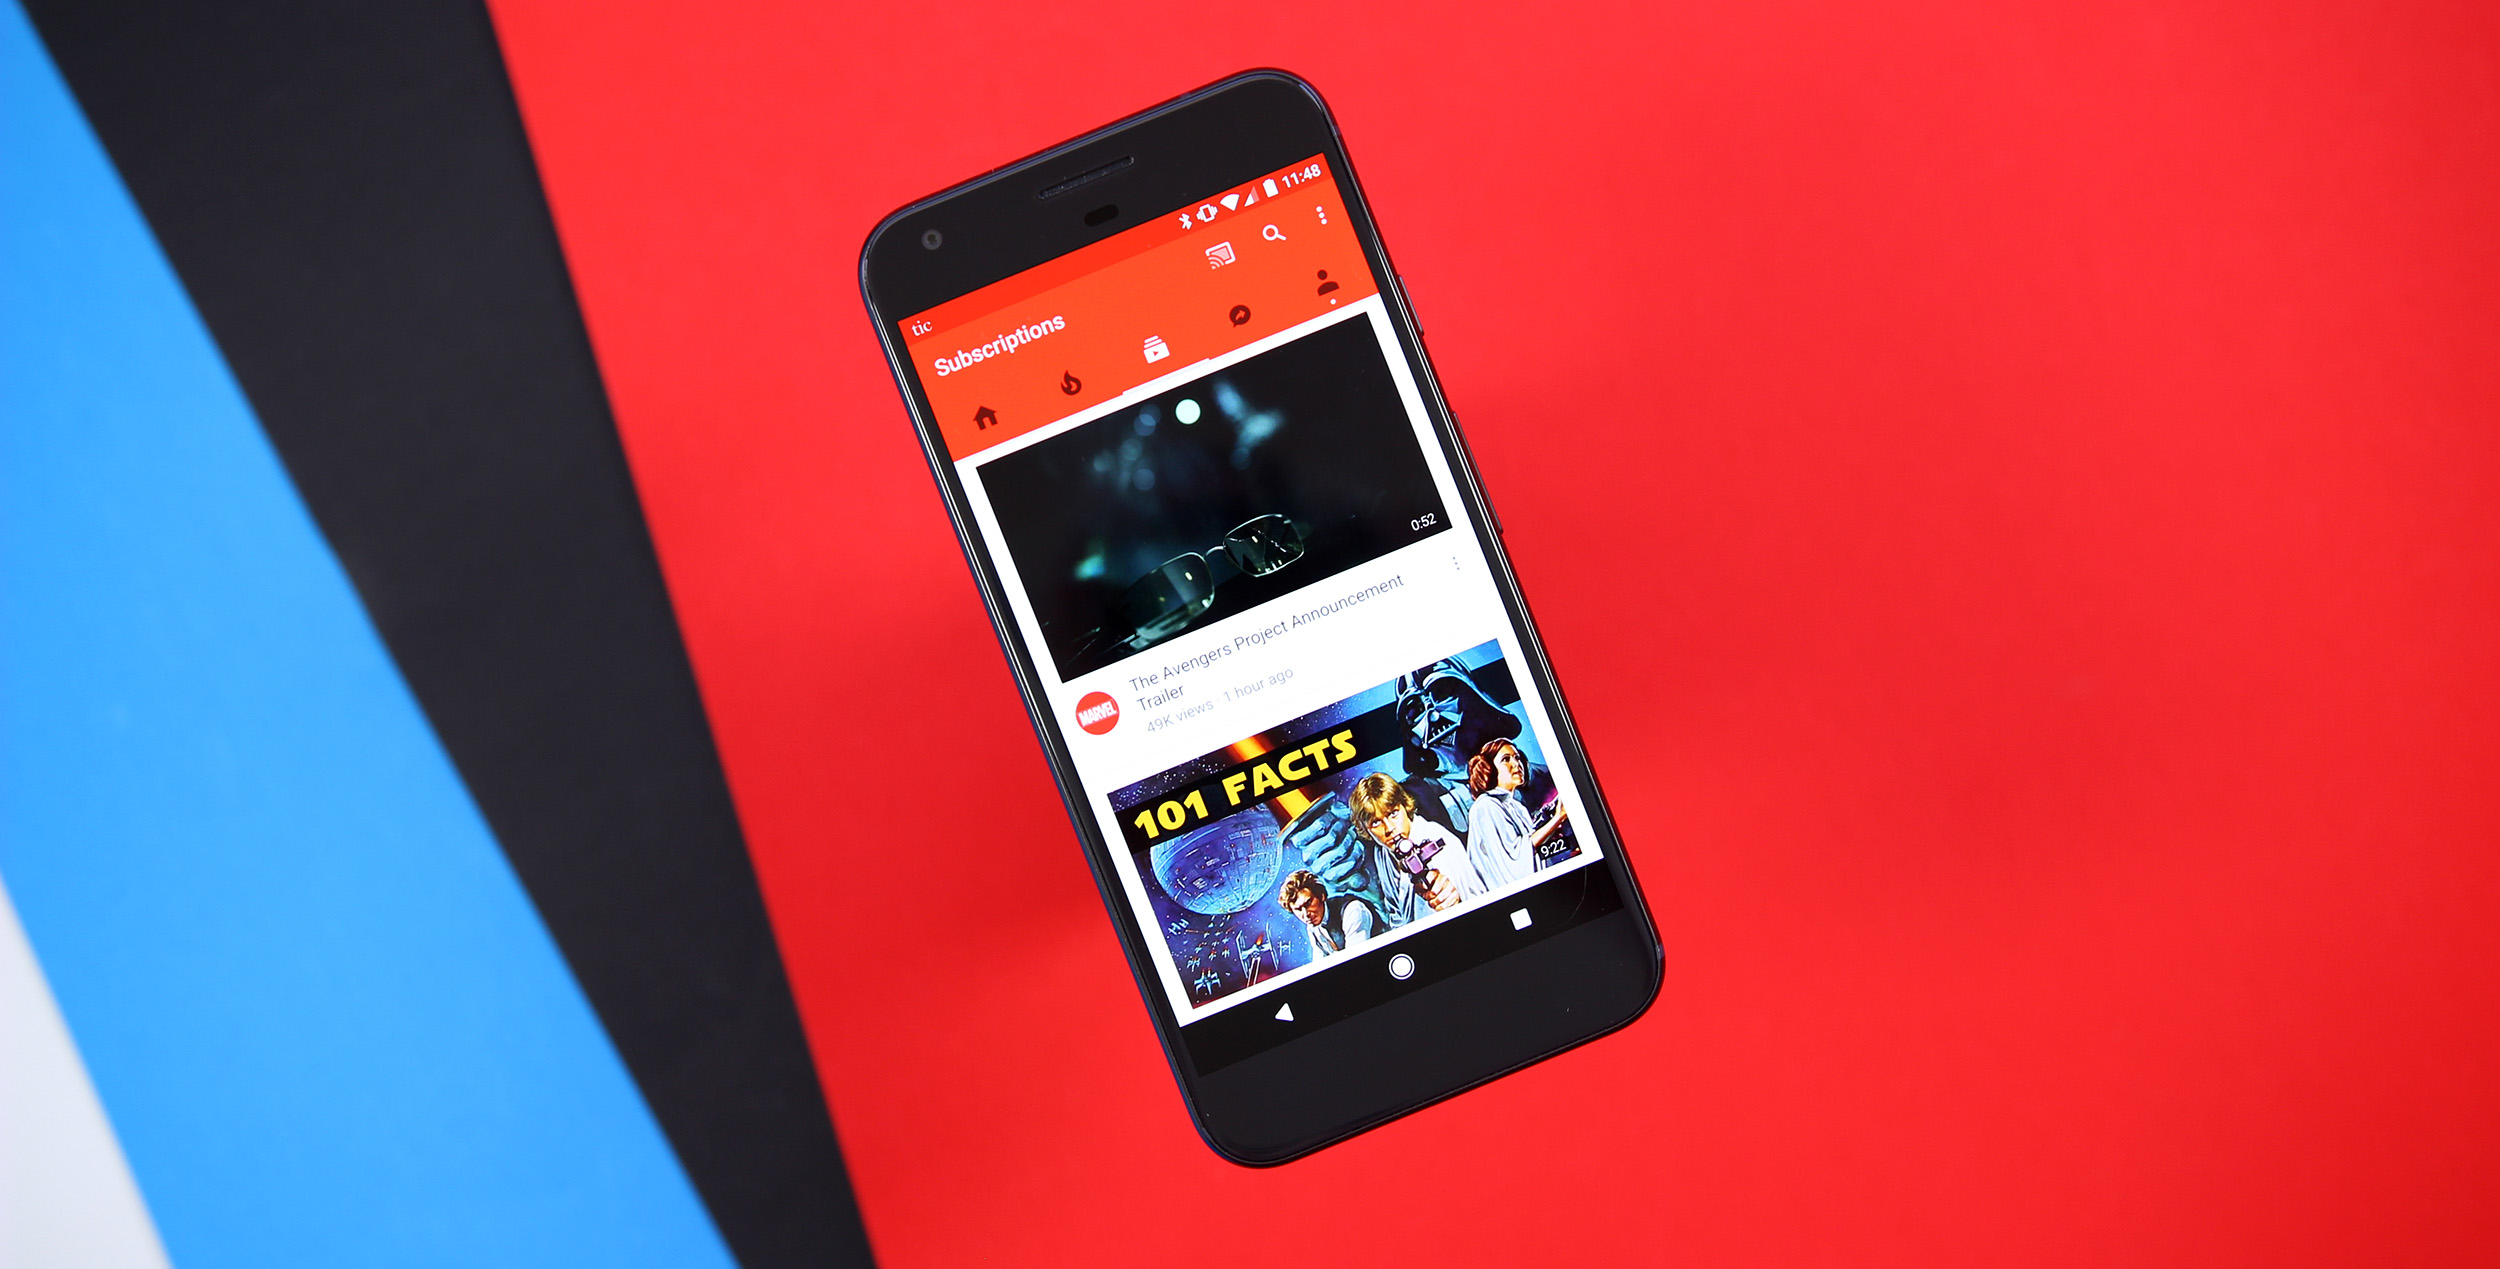 Google is testing speed controls for video playback in the YouTube Android app